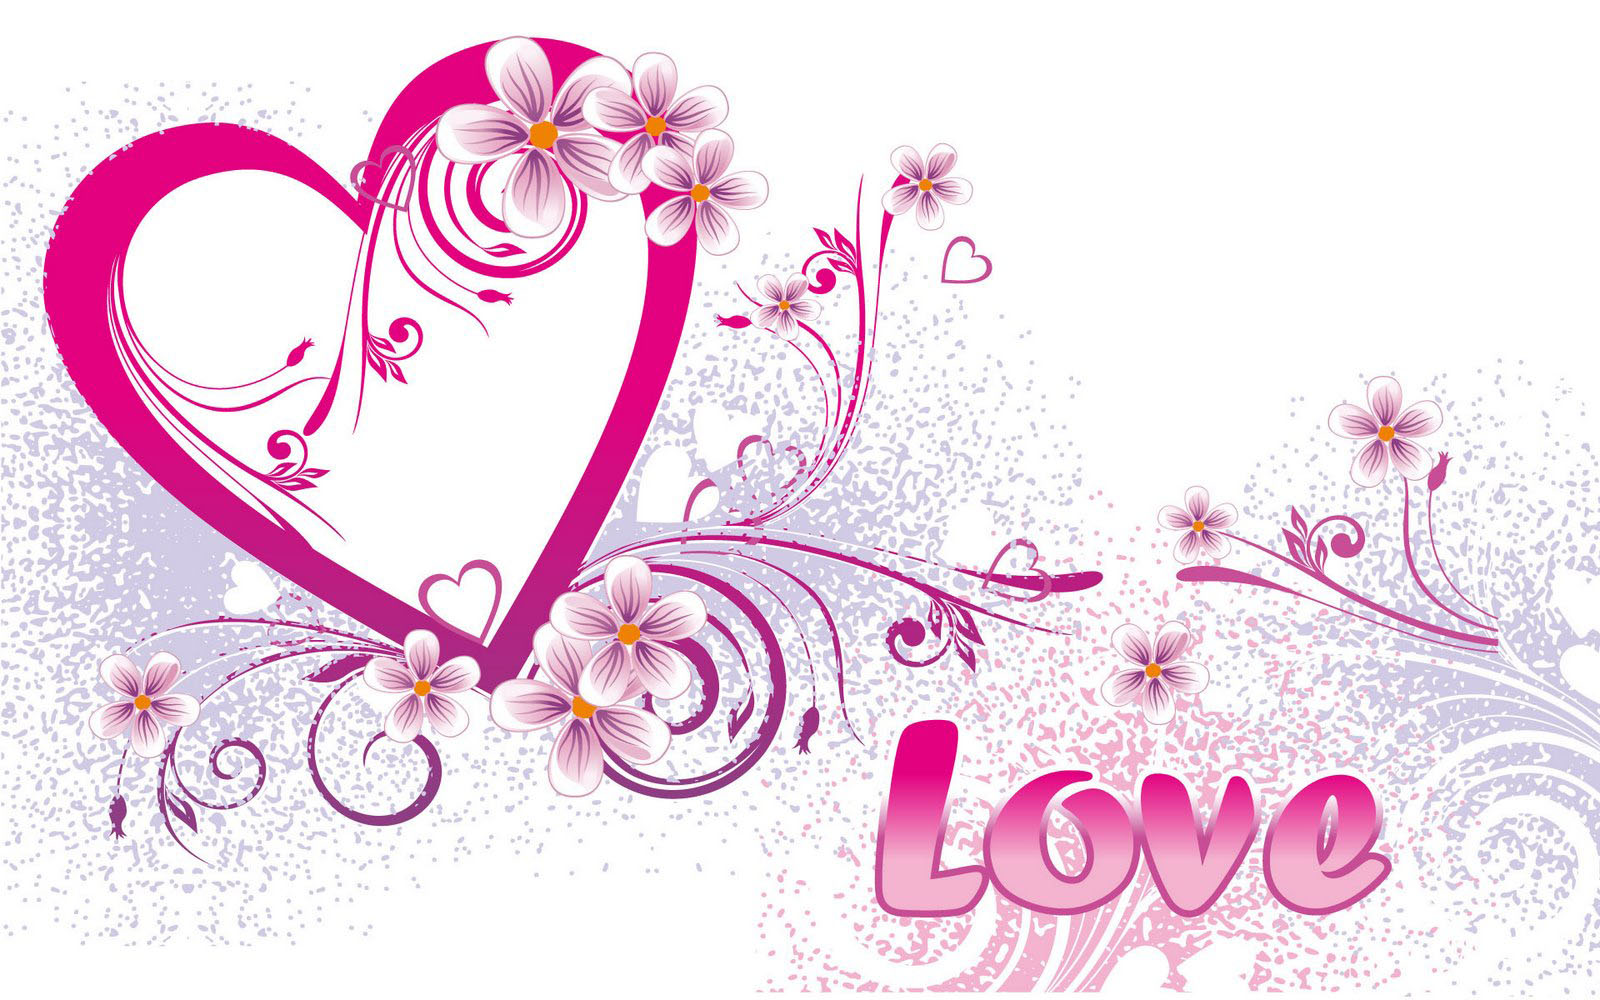 wallpapers New Love Wallpapers 1600x1000